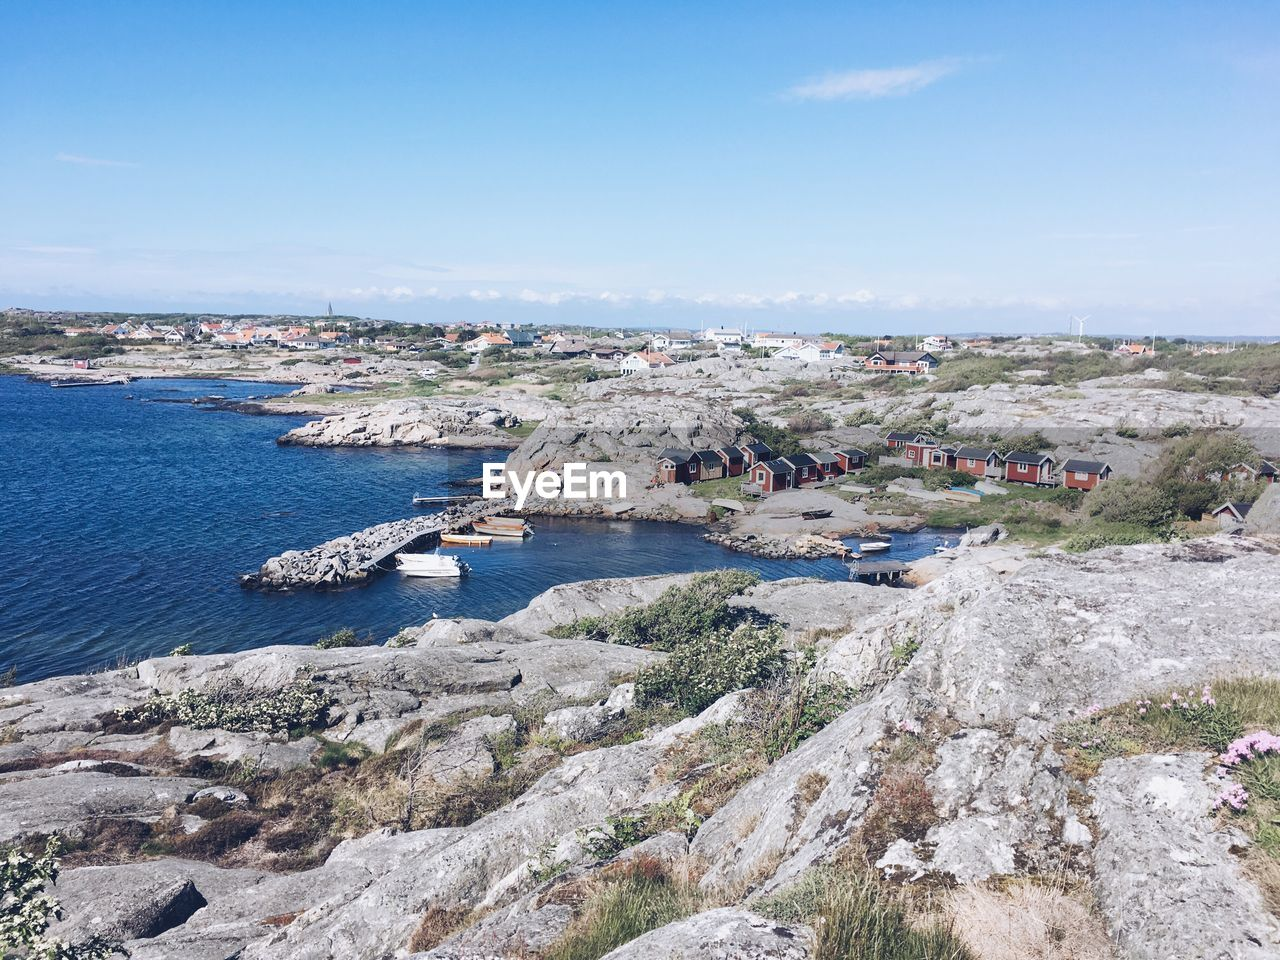 water, sky, sea, day, building exterior, architecture, built structure, nature, rock, transportation, nautical vessel, city, no people, solid, beauty in nature, rock - object, land, blue, scenics - nature, outdoors, townscape